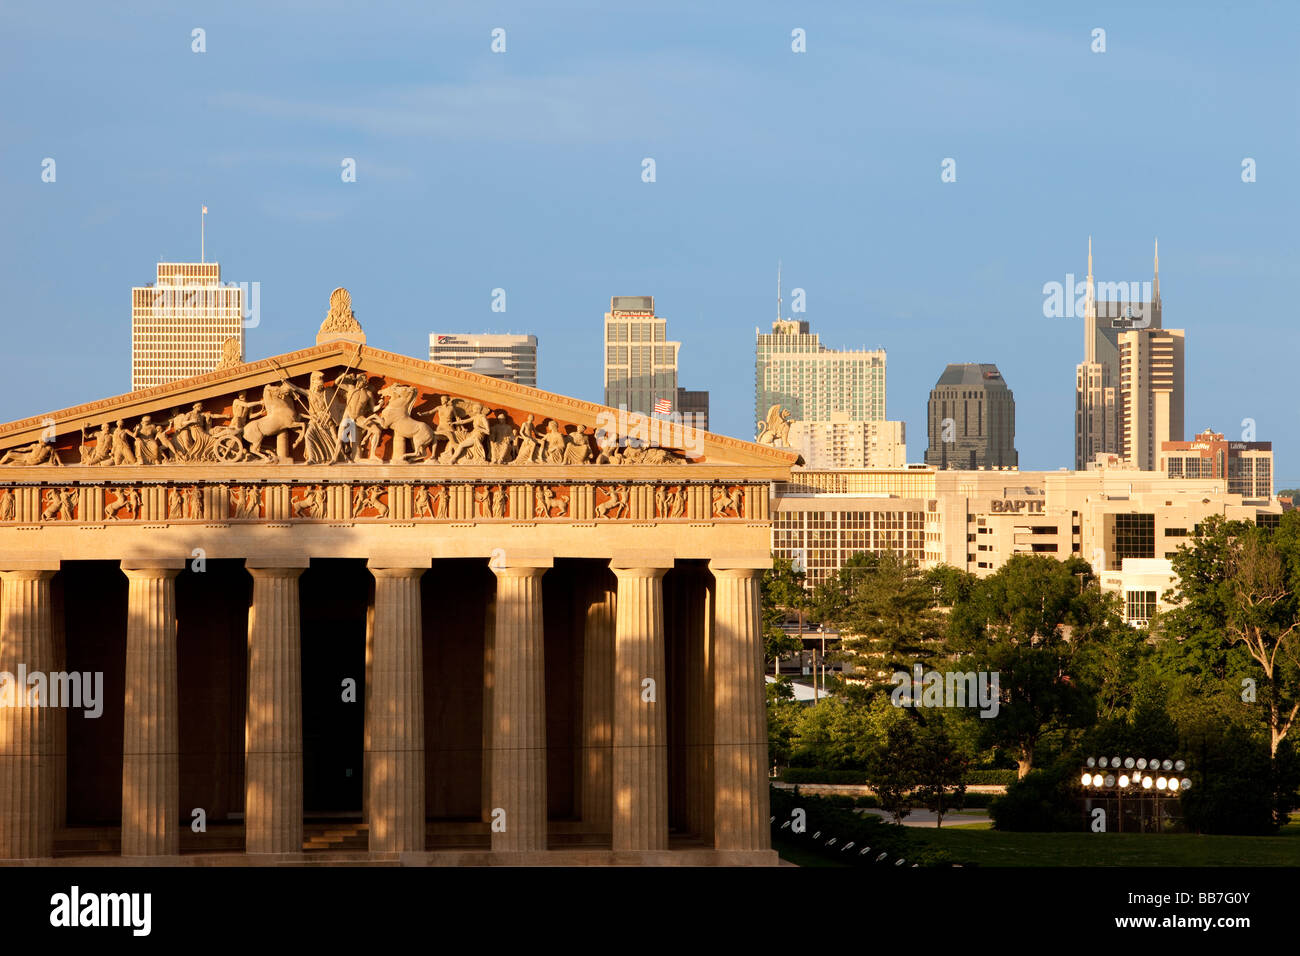 Parthenon replica with modern buildings of Nashville Tennessee in the background, USA - Stock Image